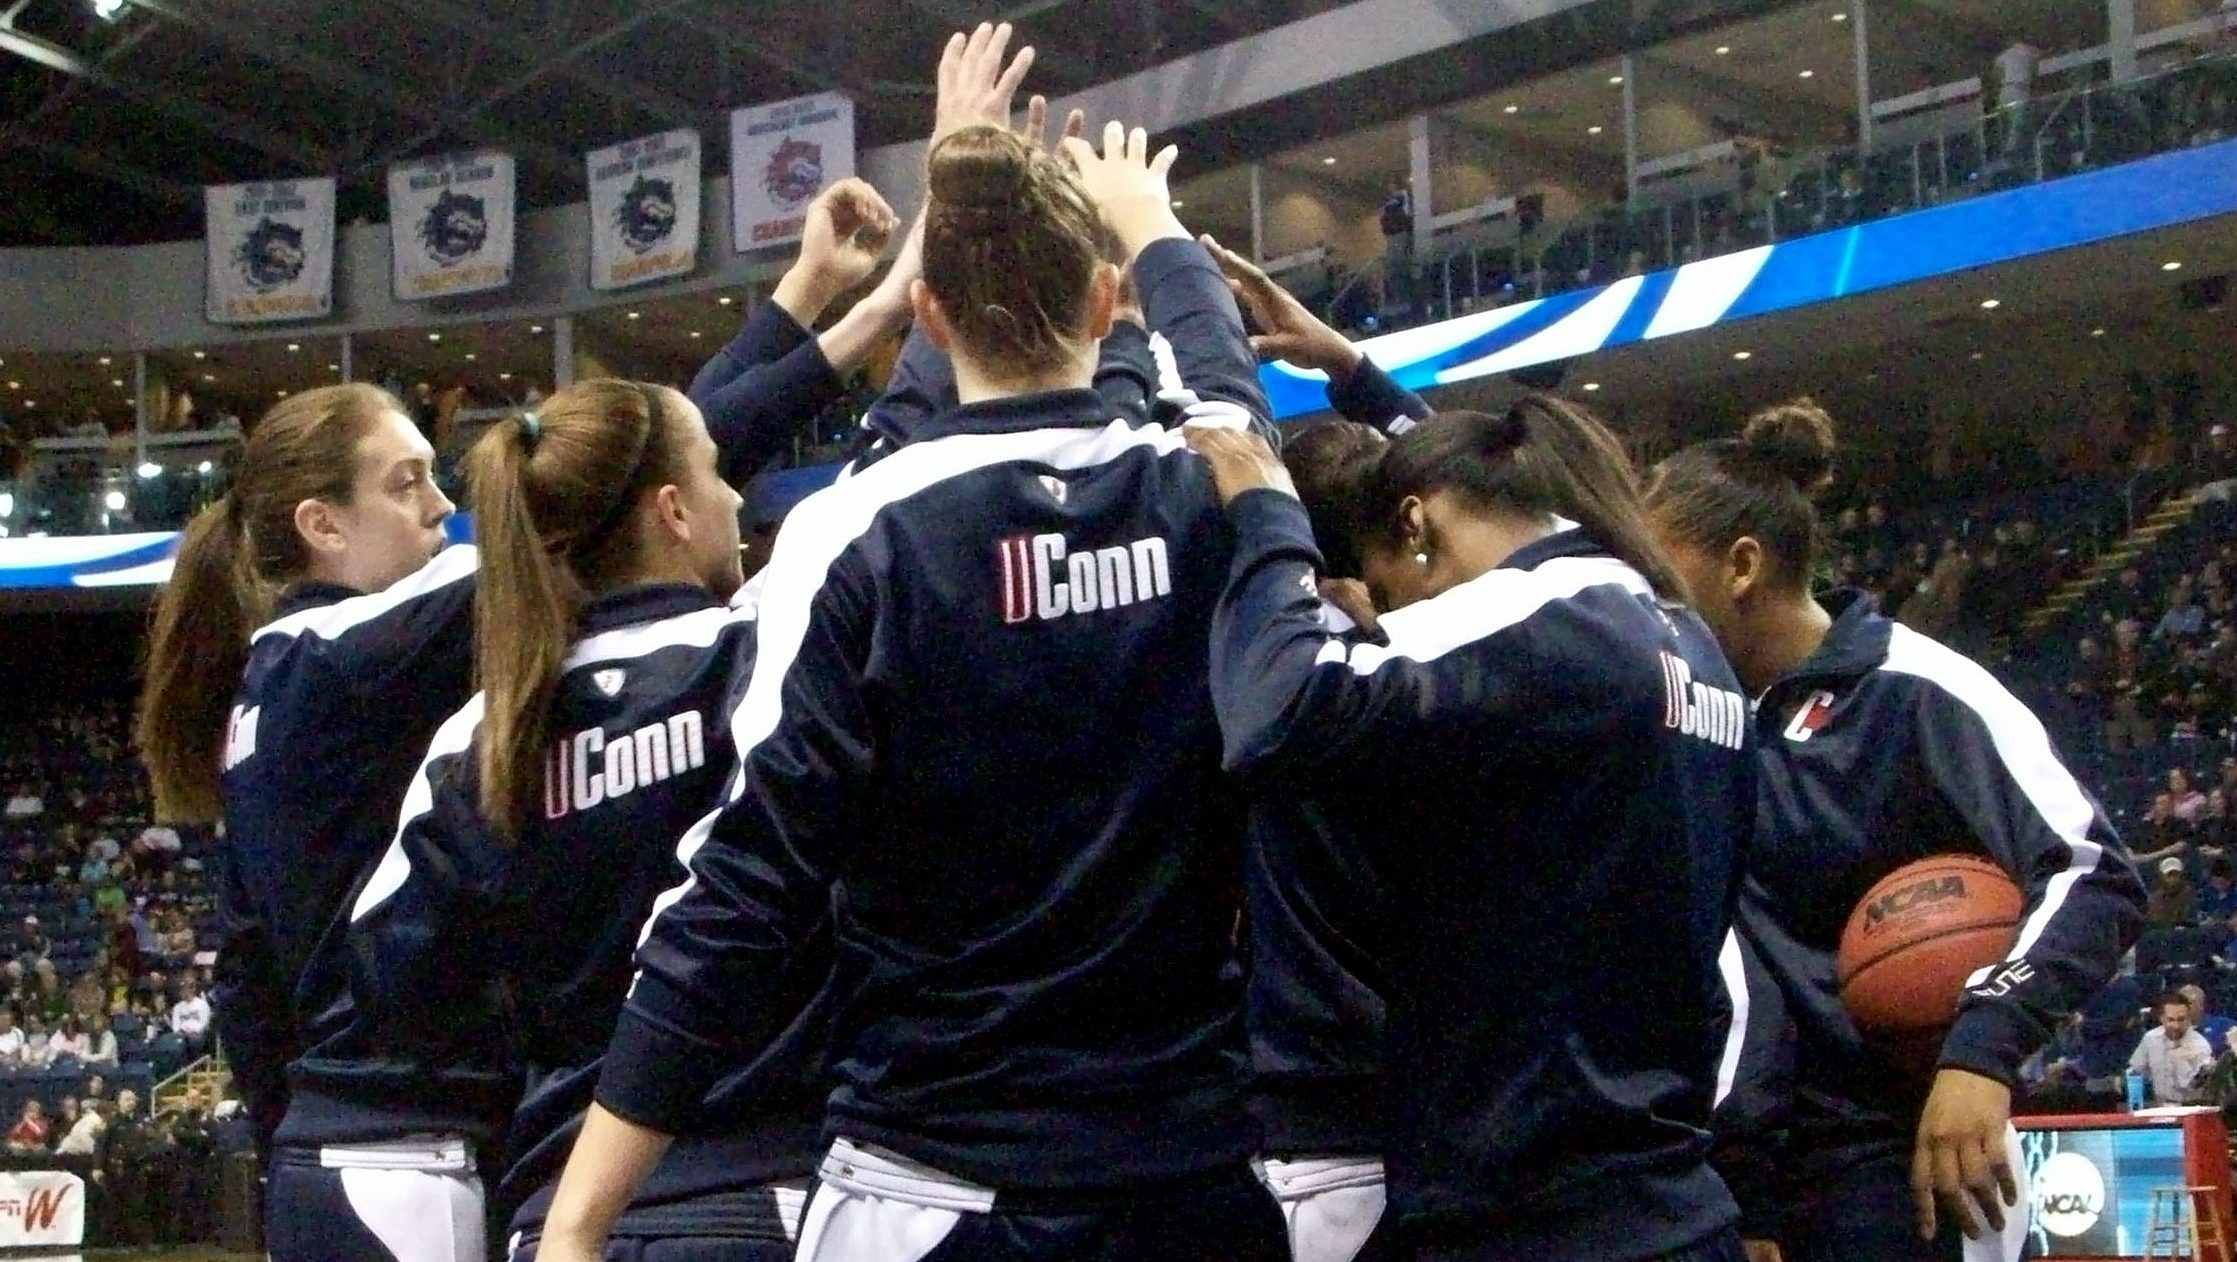 UConn overcomes slow start to blow out Kentucky 83-53 and advance to New Orleans